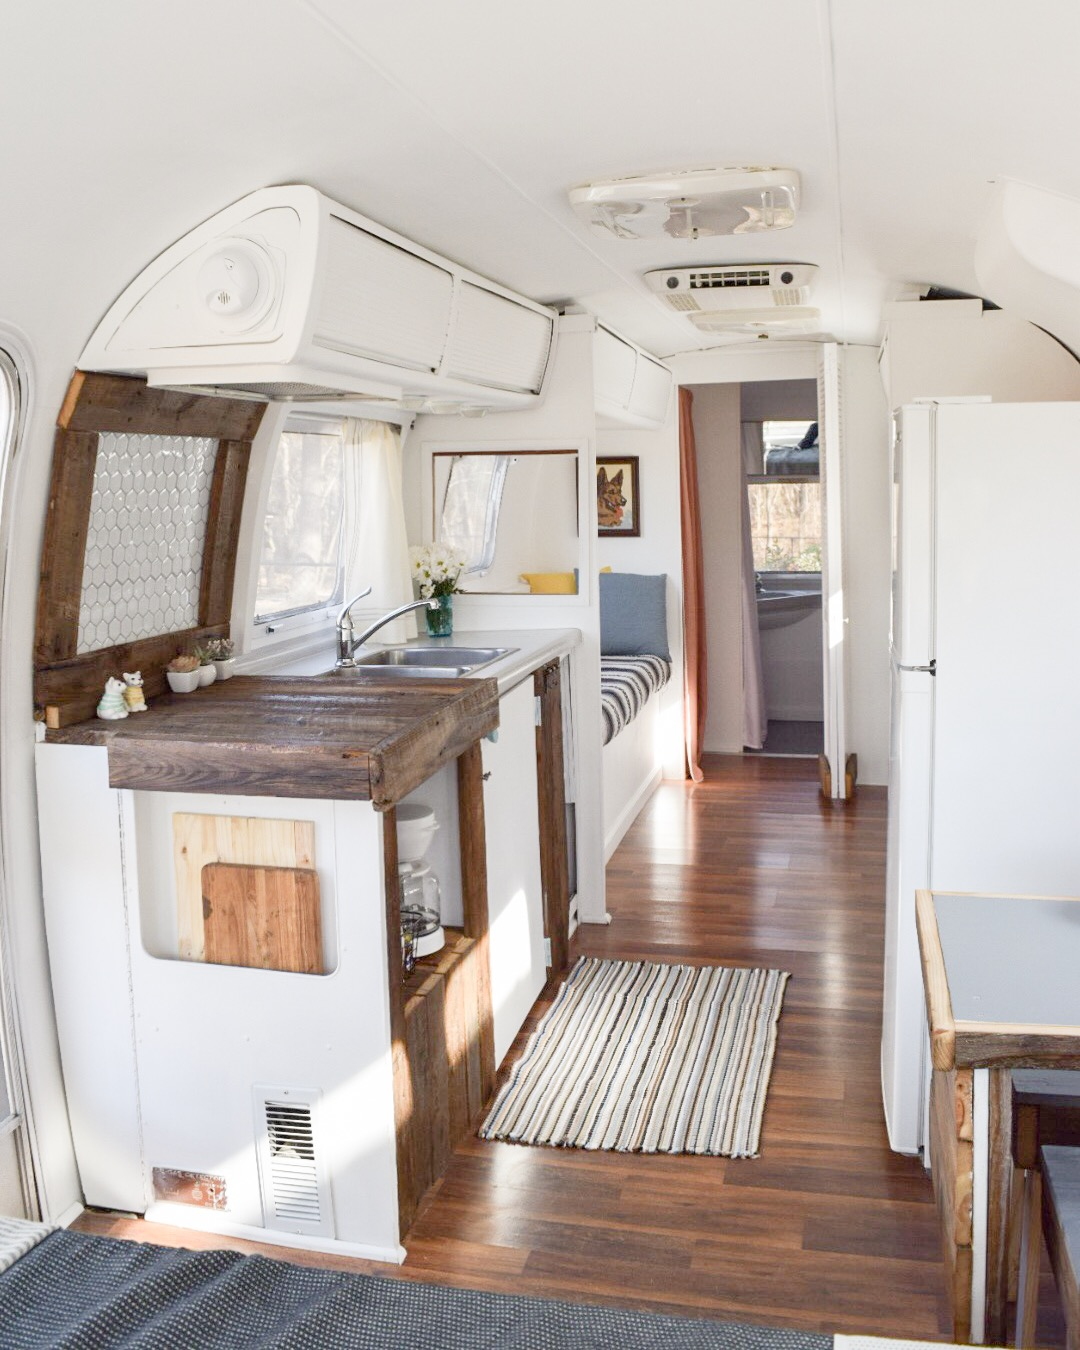 After Four Years Of Living In The Airstream, The Olu0027 Girl Was Looking A  Little Rough Around The Edges. We Knew It Was Time To Do A Little Airstream  Remodel ...